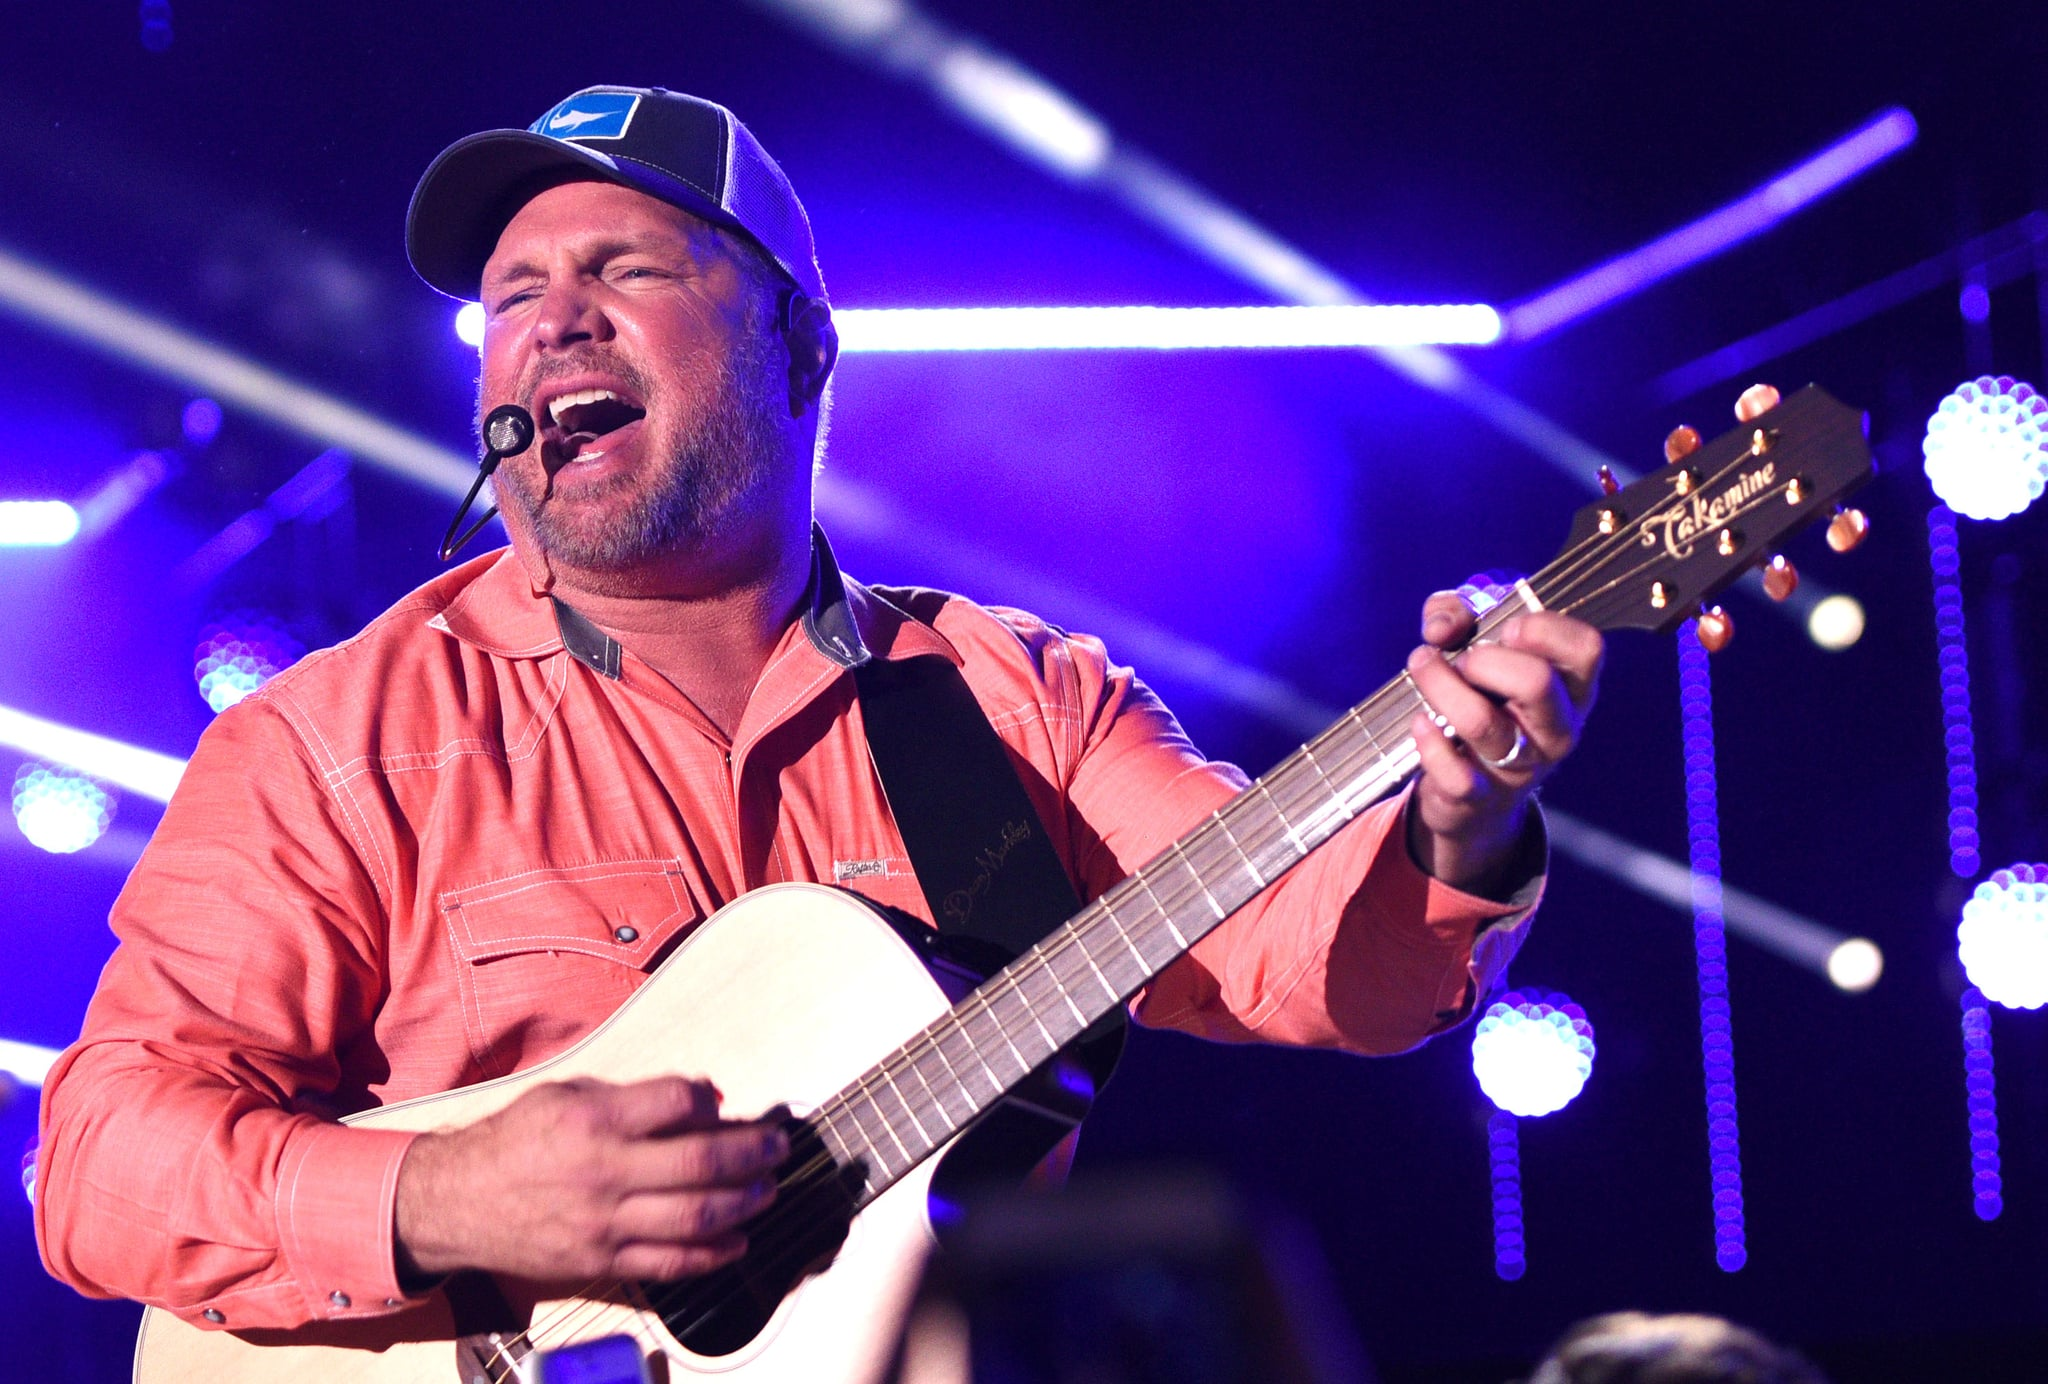 Garth Brooks' daughter gets engaged at his show